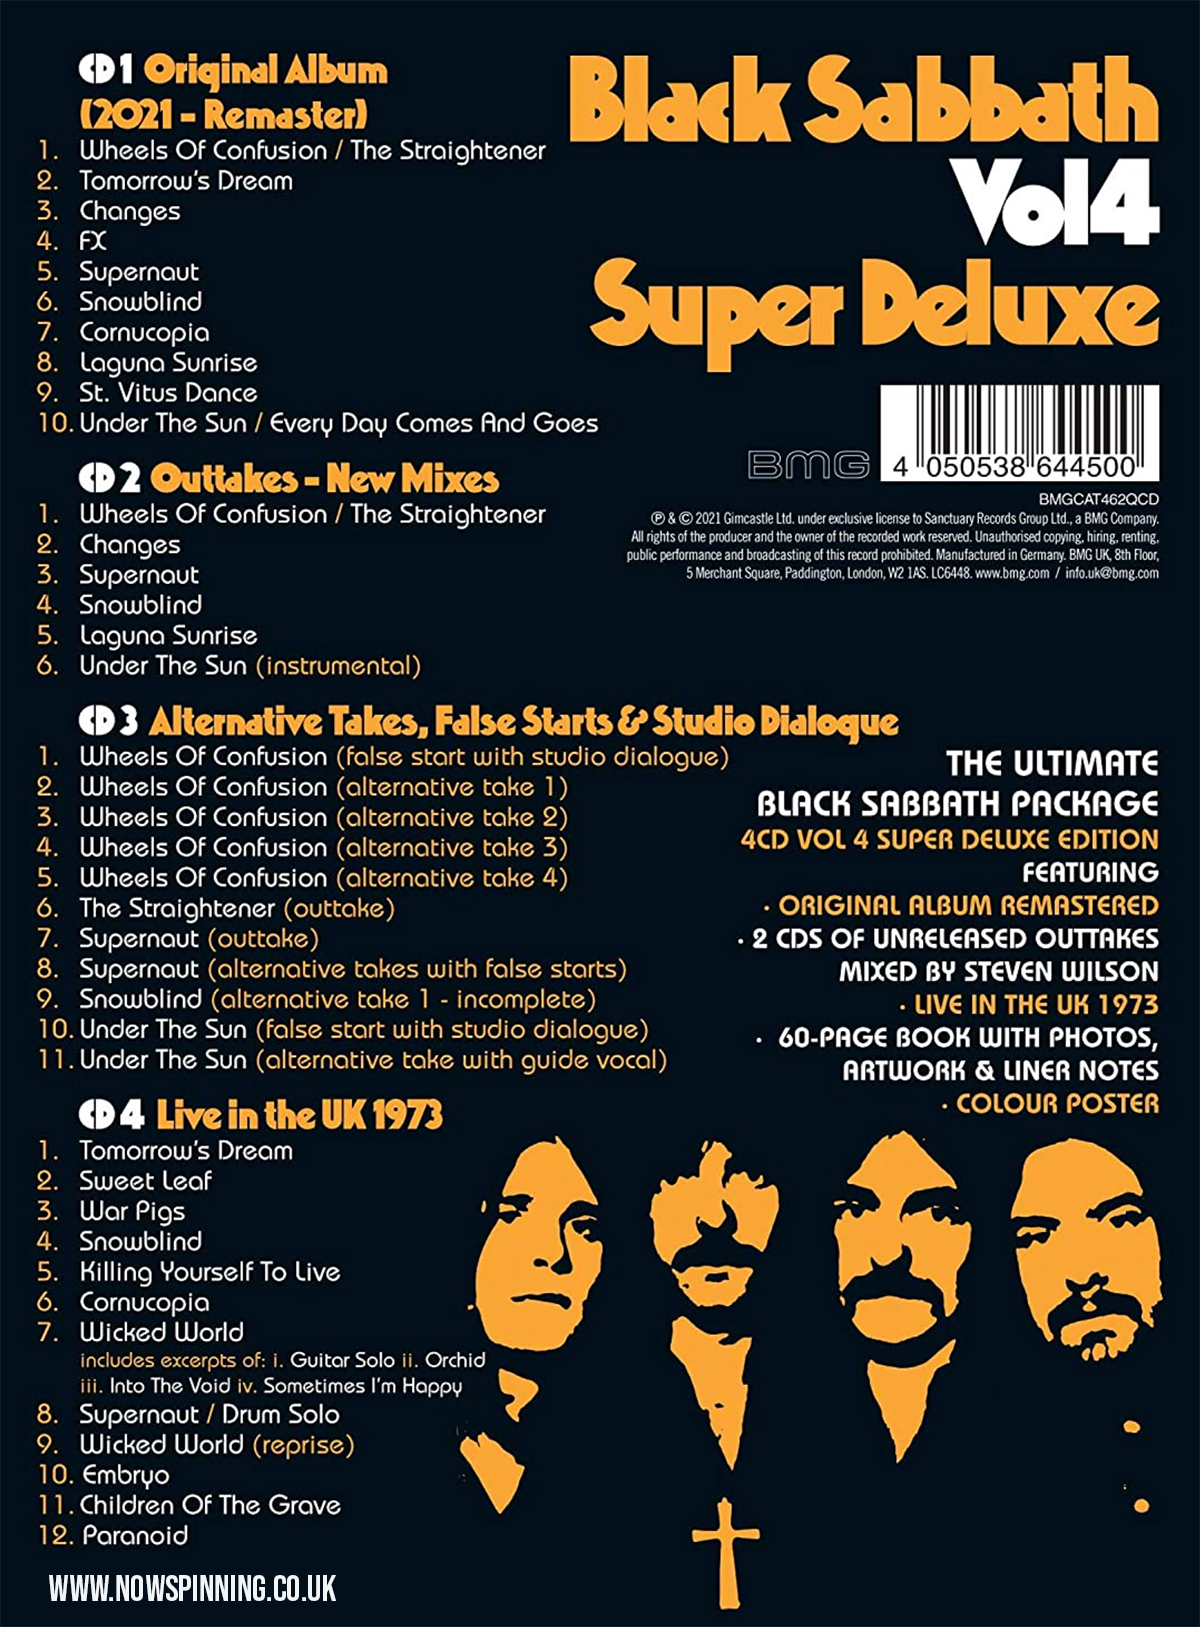 Black Sabbath Vol 4 - Super Deluxe Edition - 4CD Steven Wilson Remix